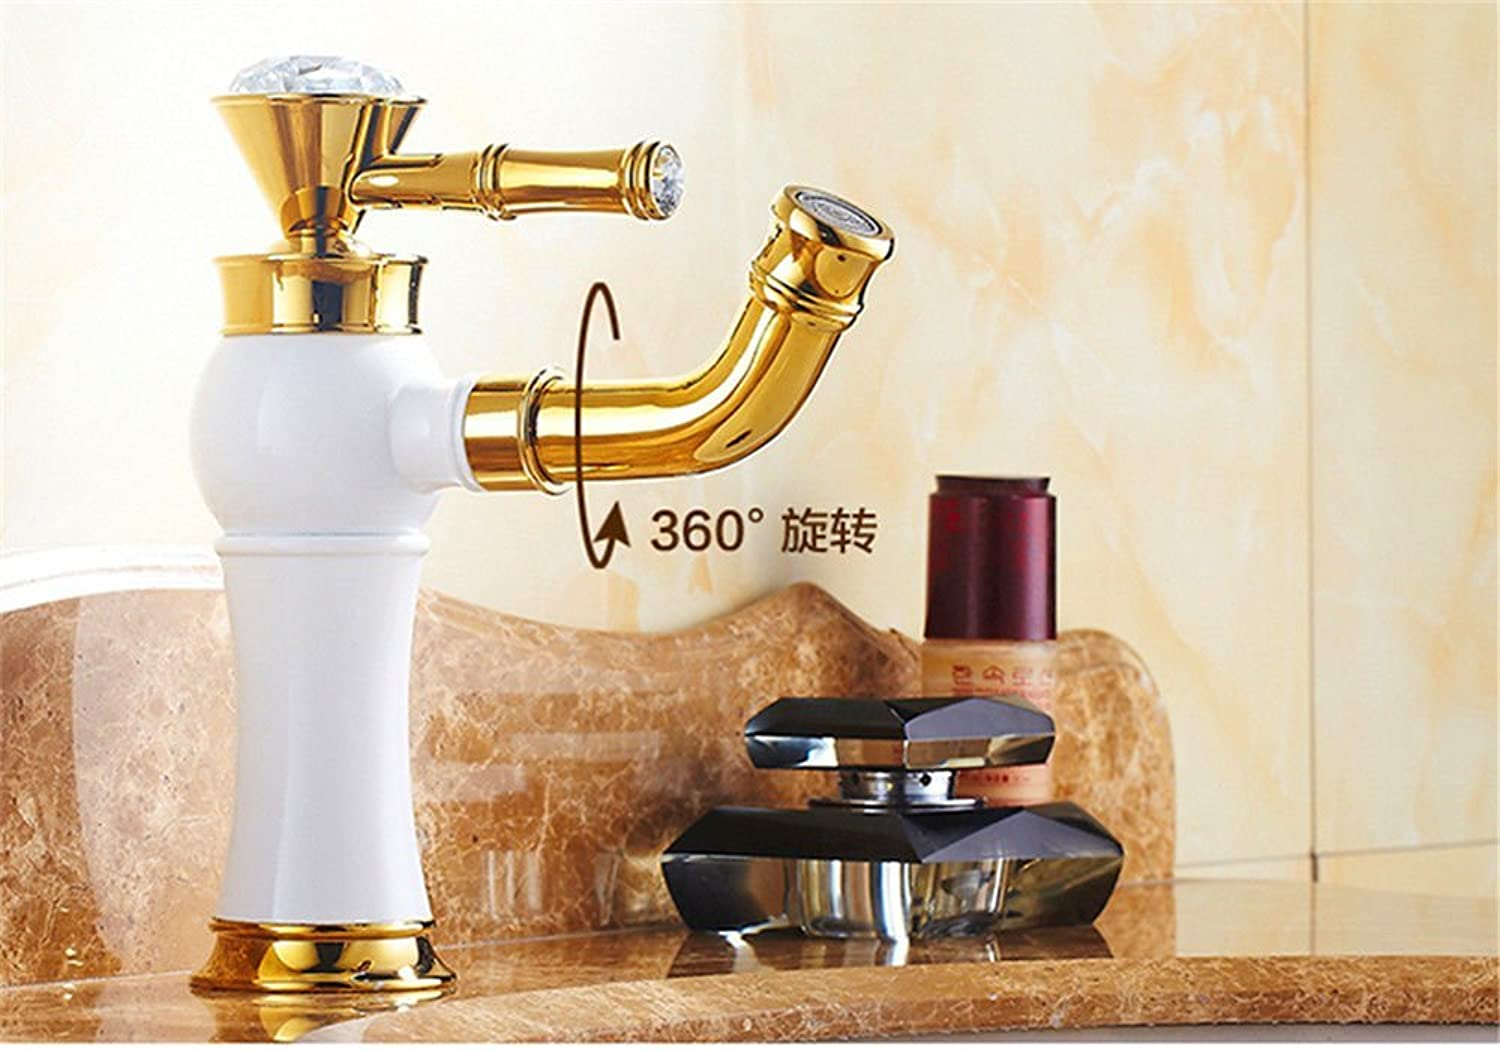 BDYJY ※ Bathroom Sink Faucets Retro Antique Oven Painting 360 ° Sink Mixer Sink Faucet Kitchen Faucets